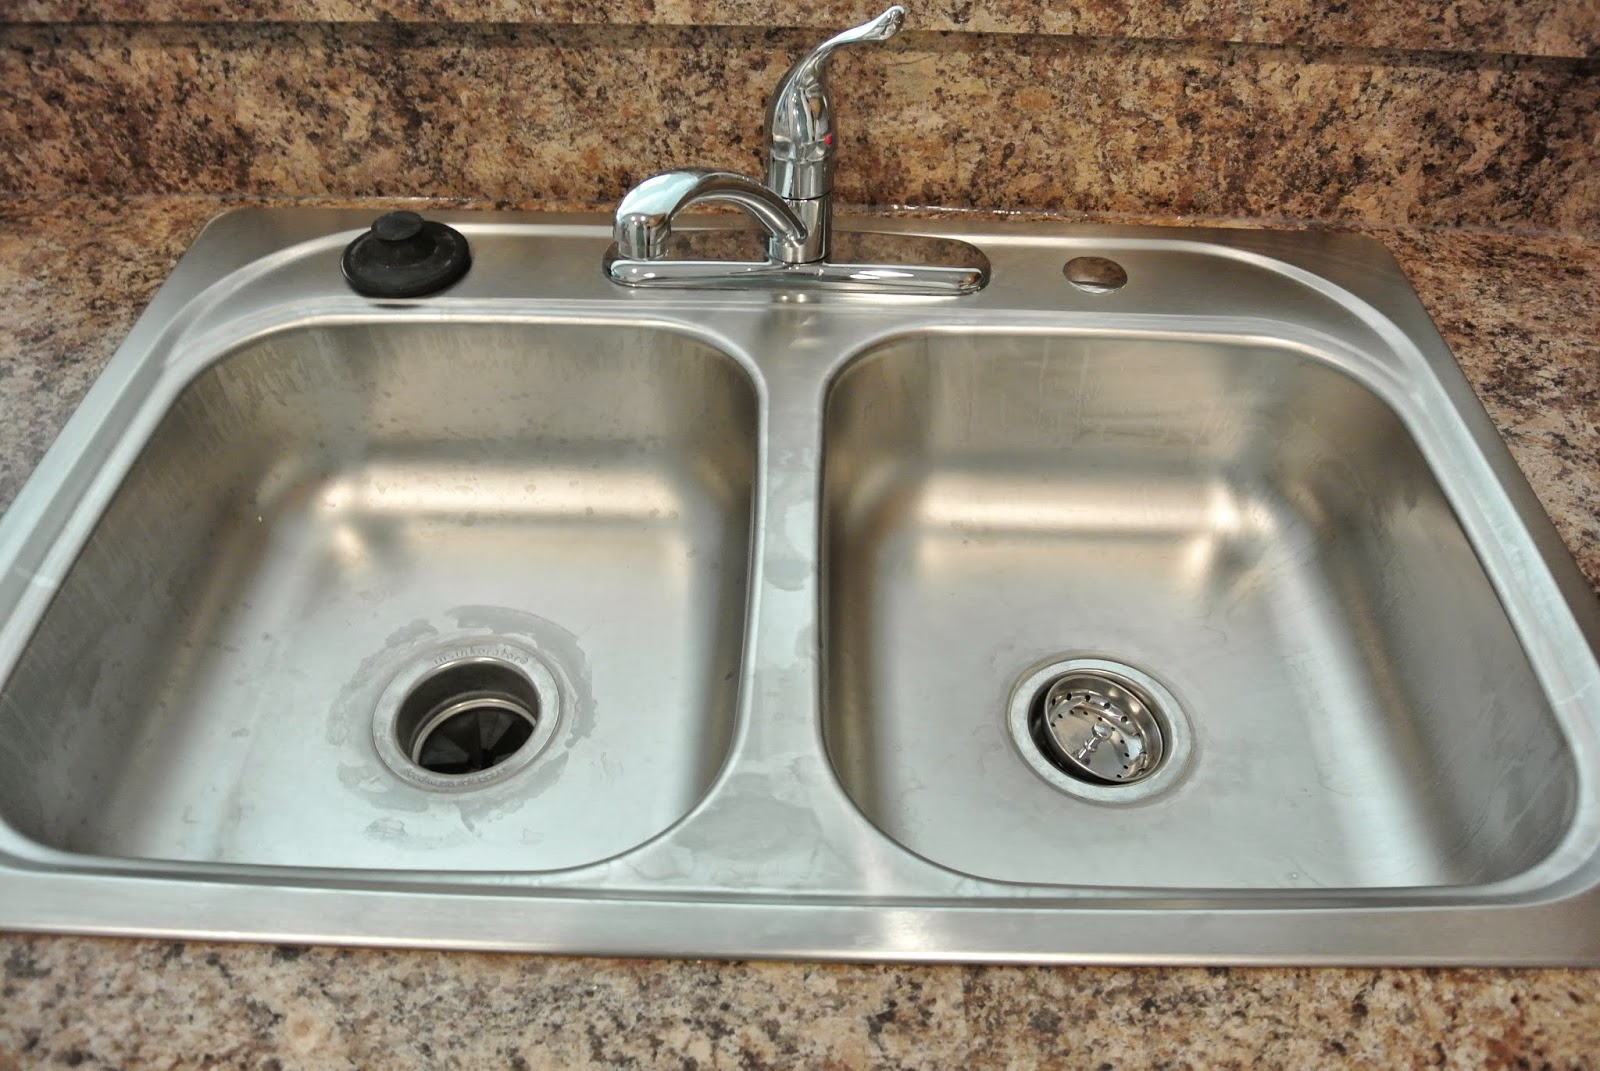 A picture of the kitchen sink.